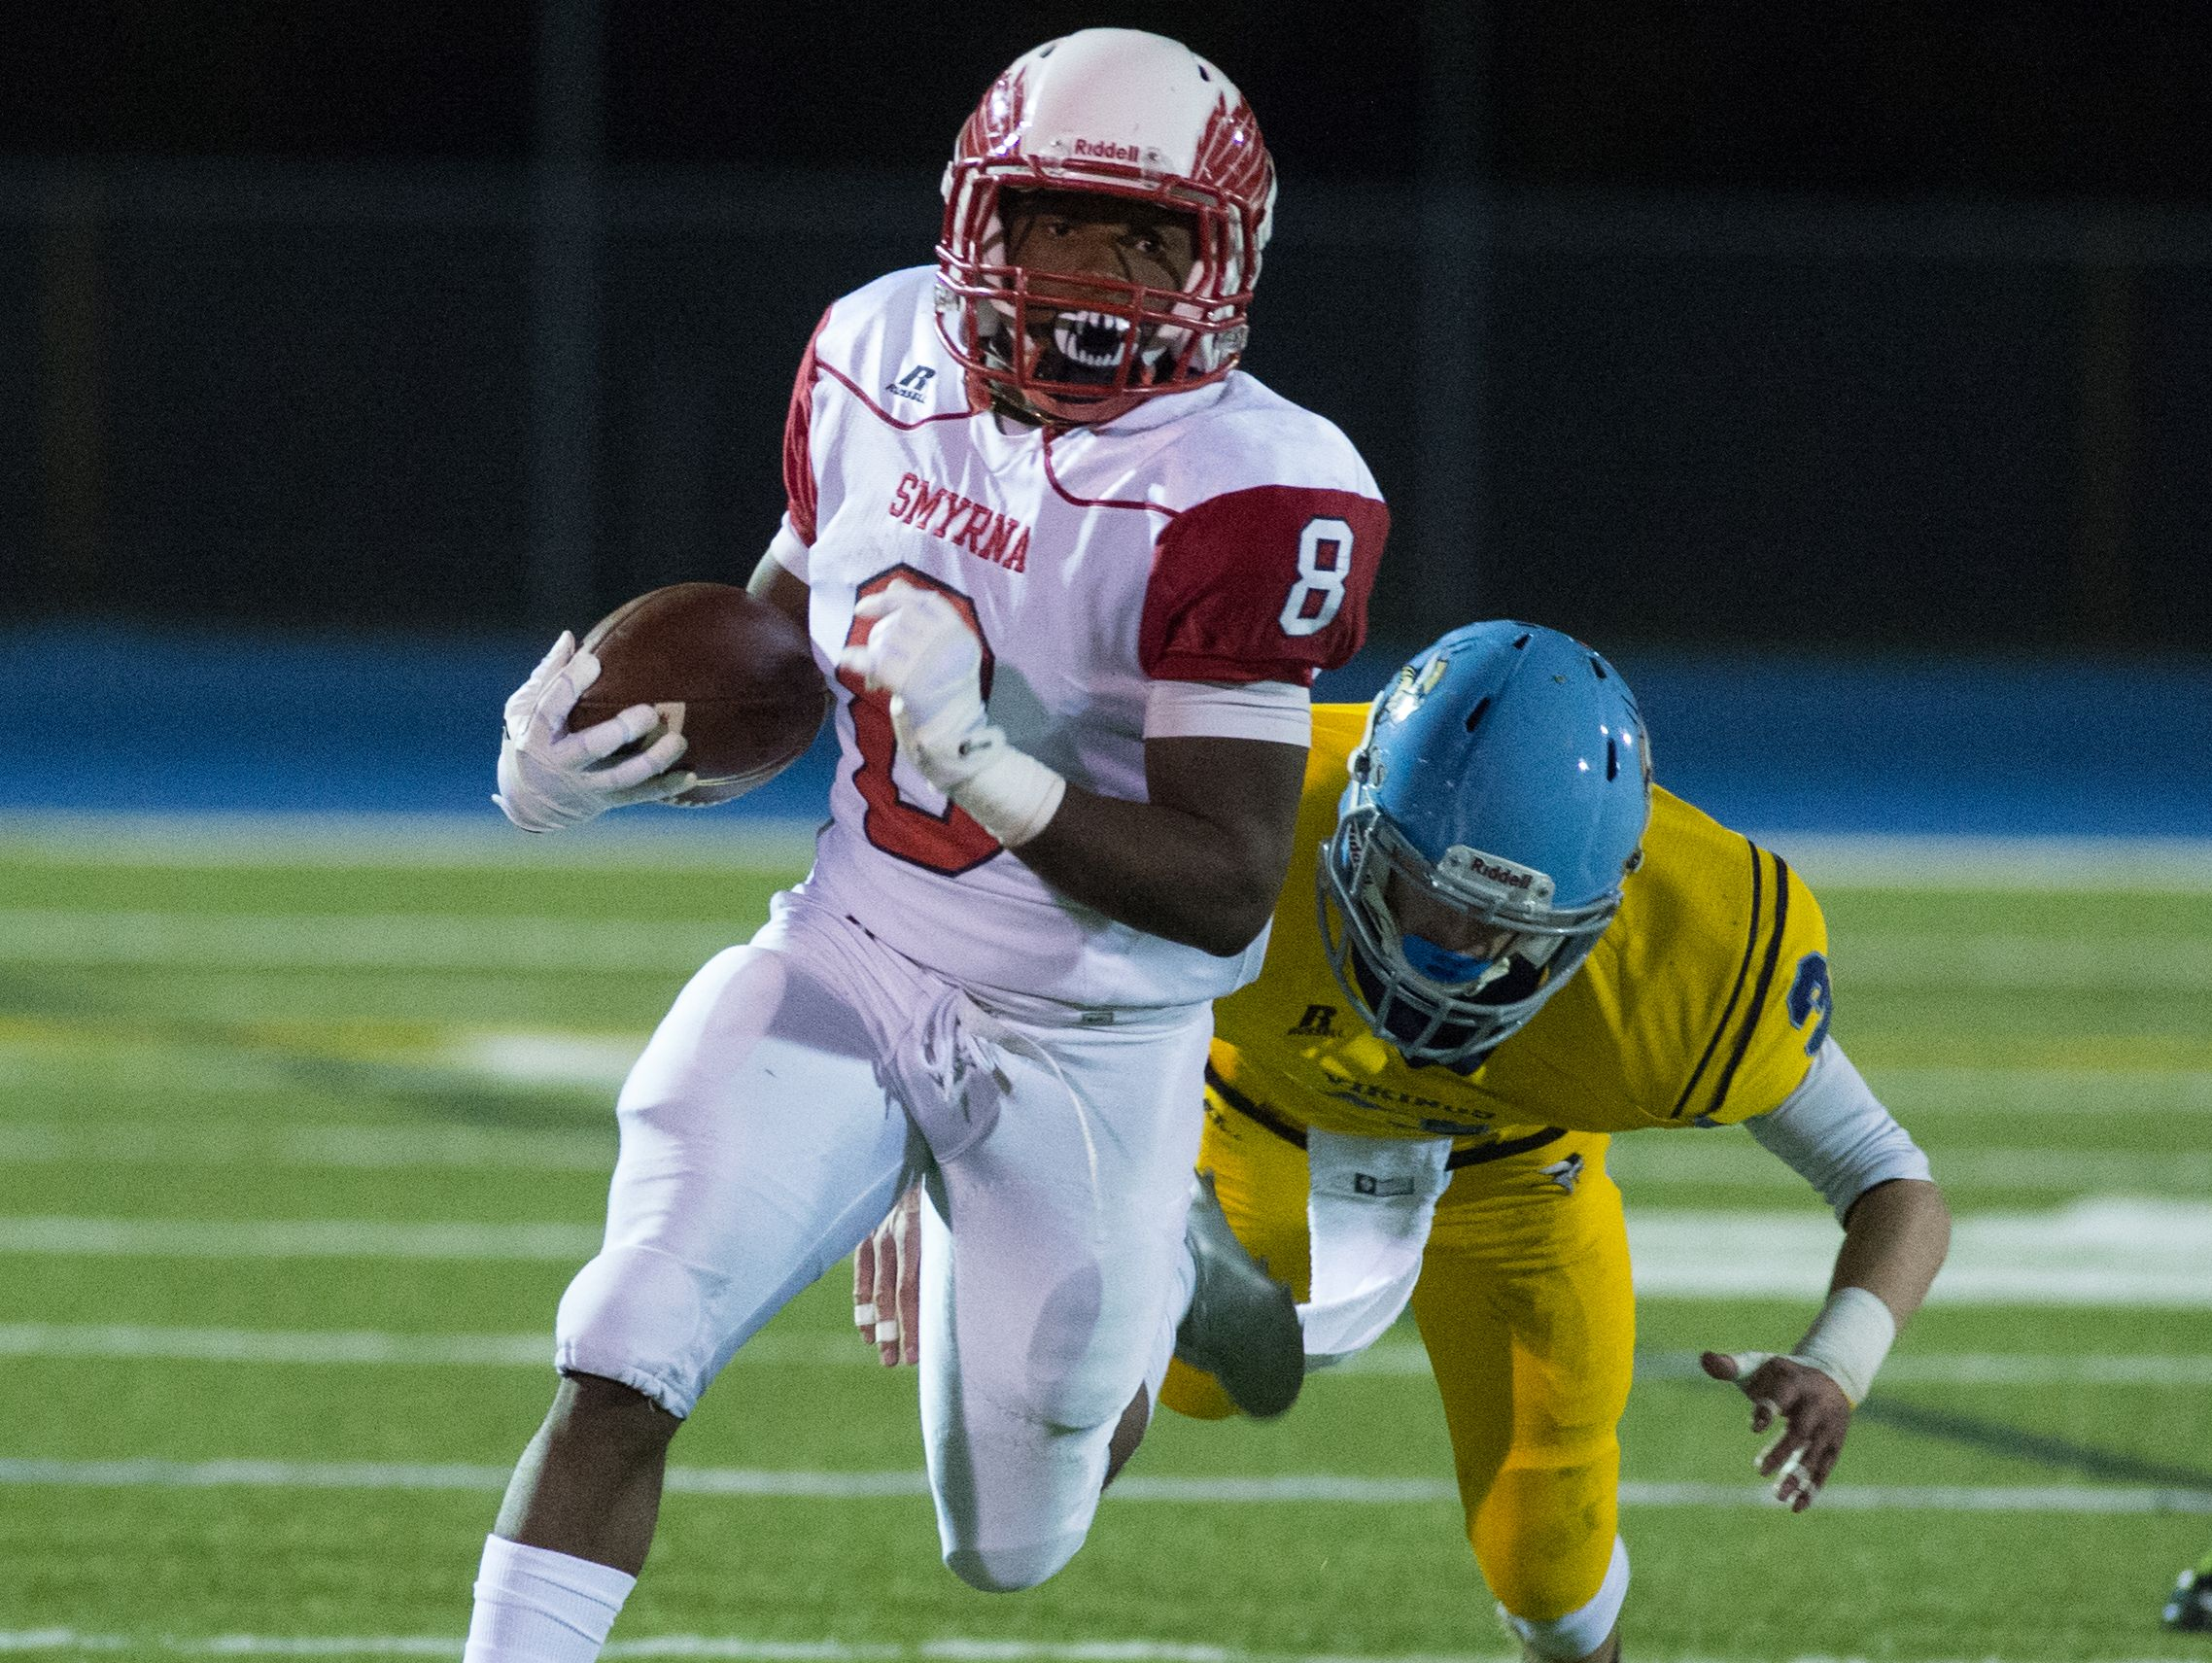 Smyrna's Keshaun Tolbert (8) runs with the ball down the field in their game against Cape Henlopen.